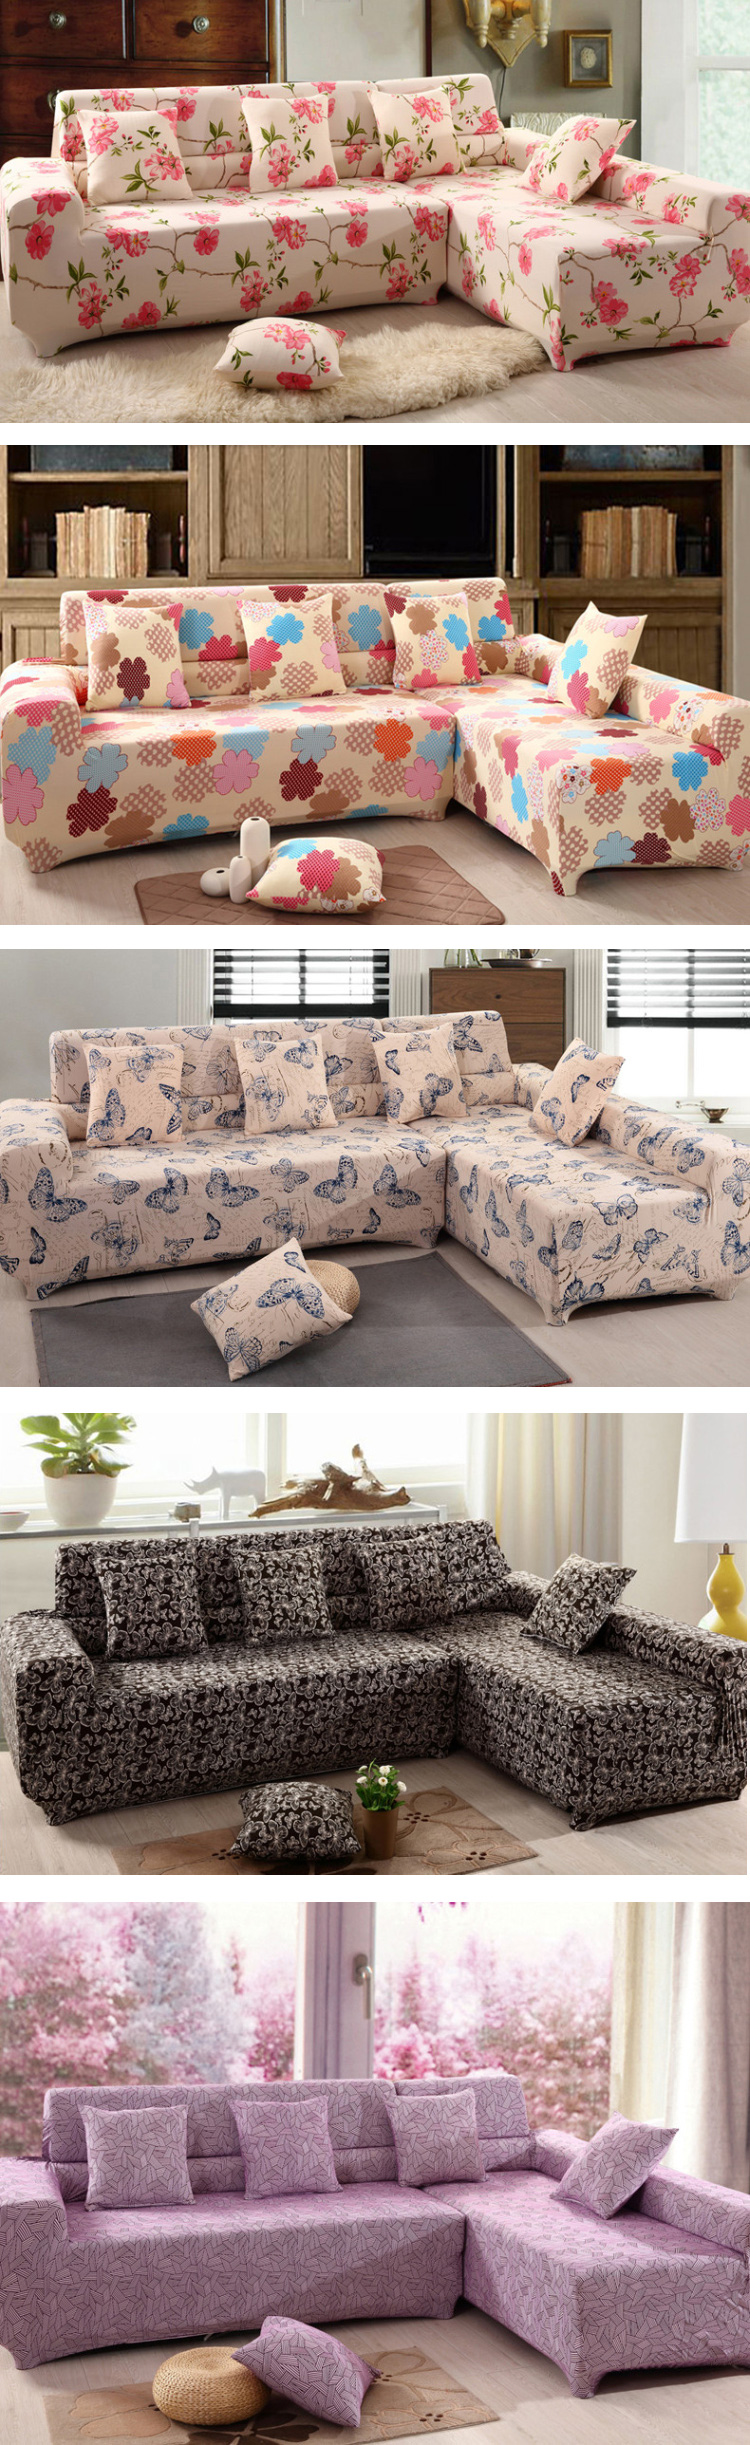 Four Seater Textile Spandex Strench Flexible Printed Elastic Sofa Couch Cover Furniture Protector